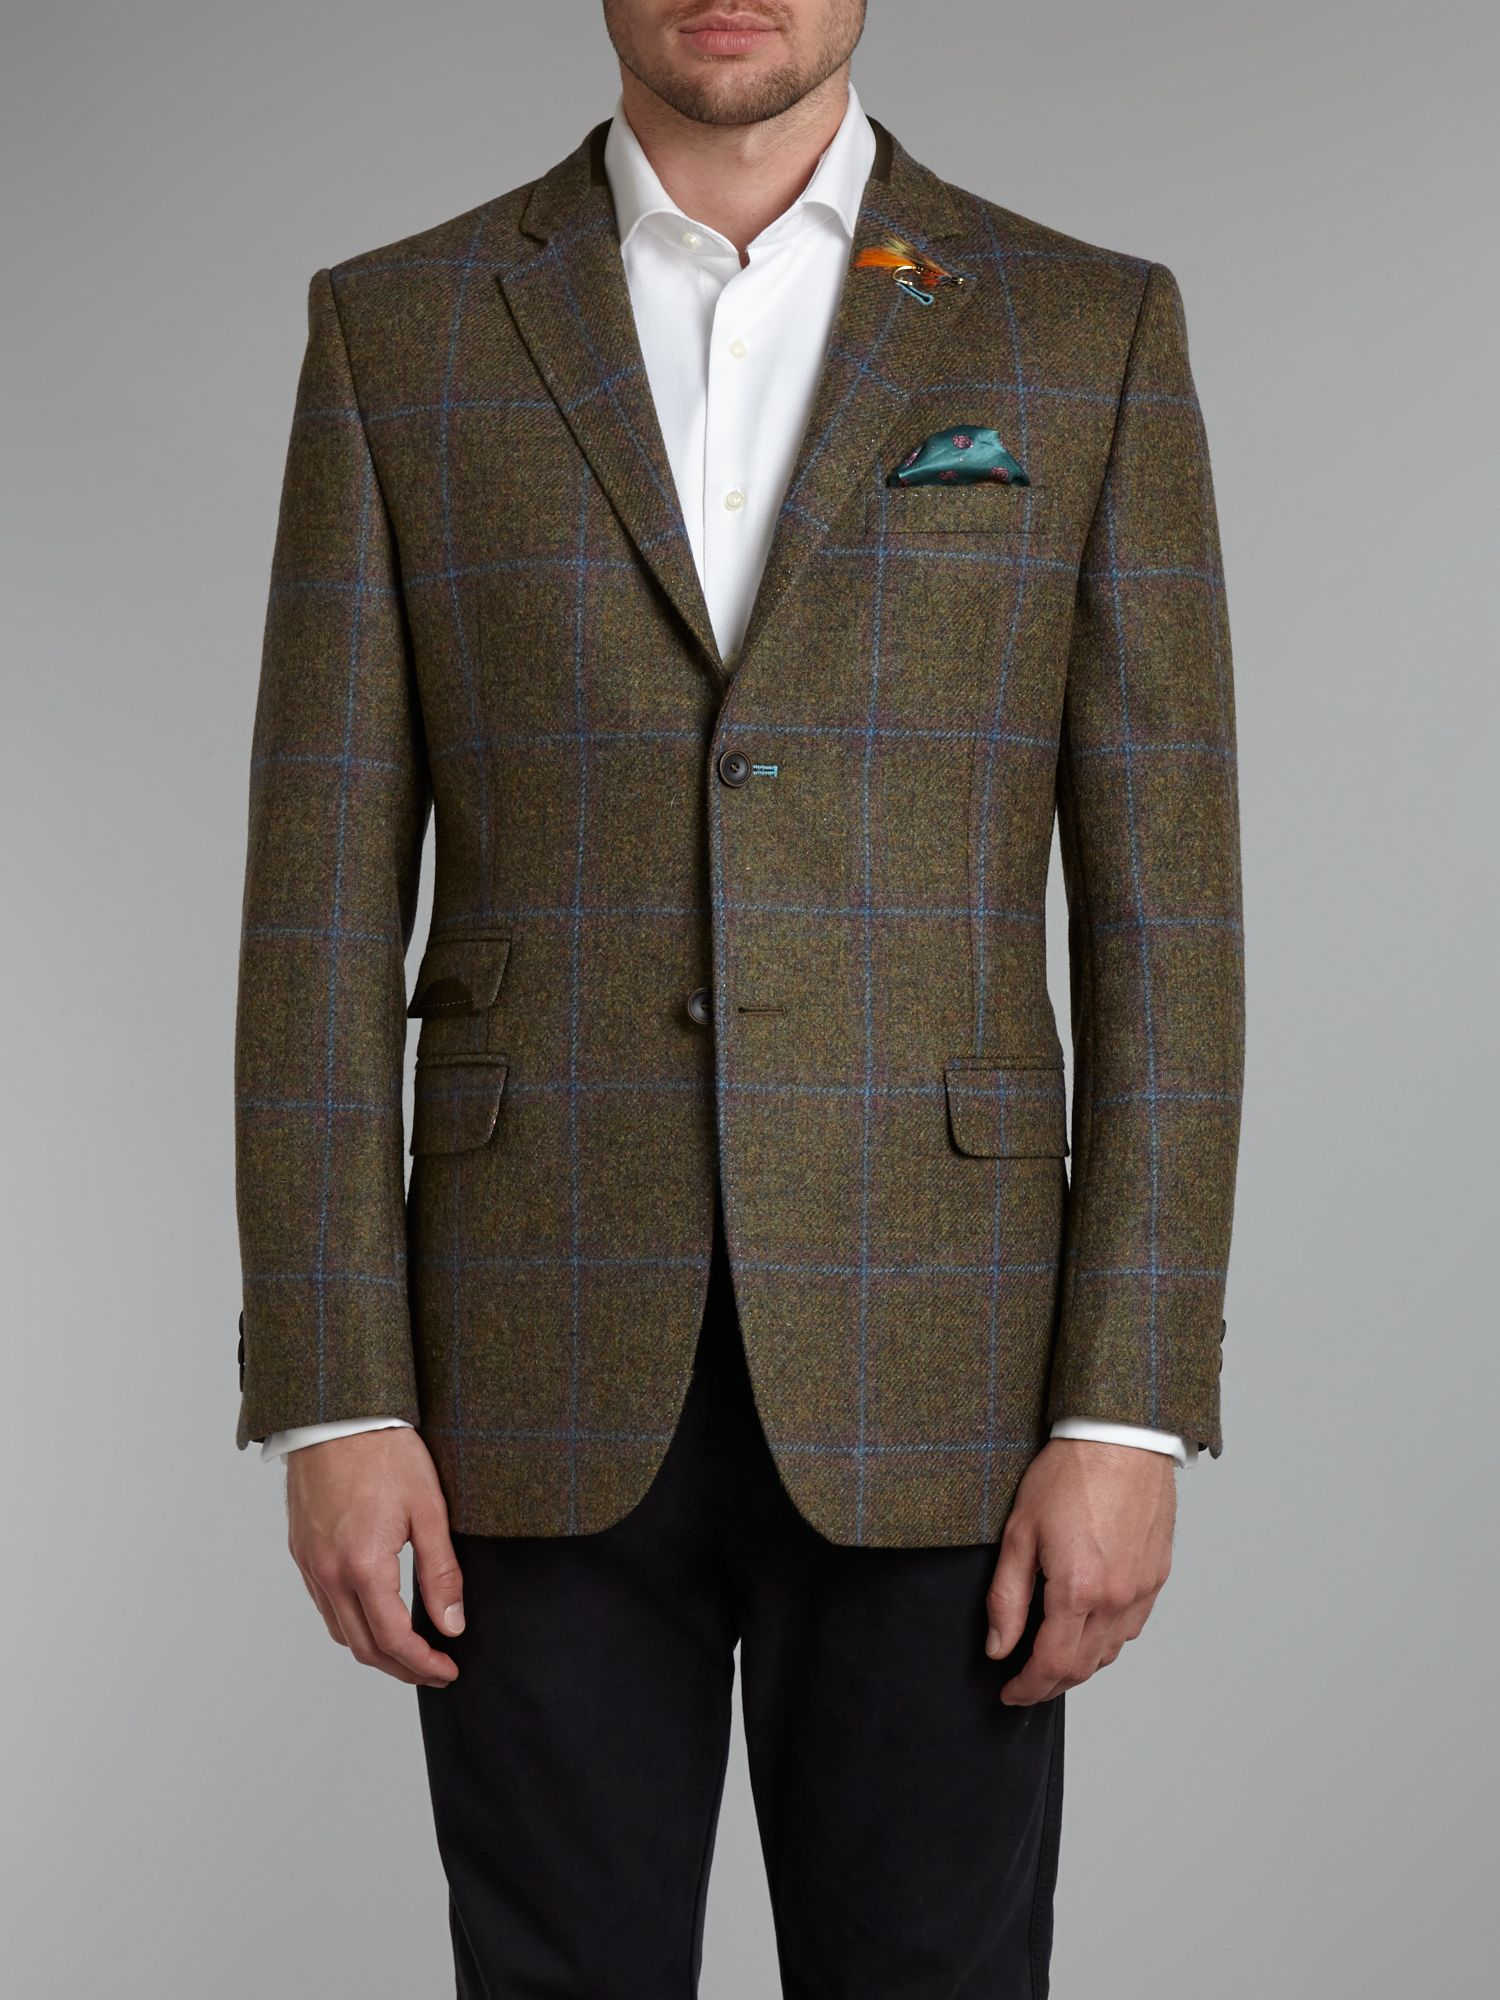 donegal single men Hand tailored mens donegal tweed waistcoats, bespoke made donegal irish tweed vests uk in our own factory in leeds uk using the best irish donegal tweed.